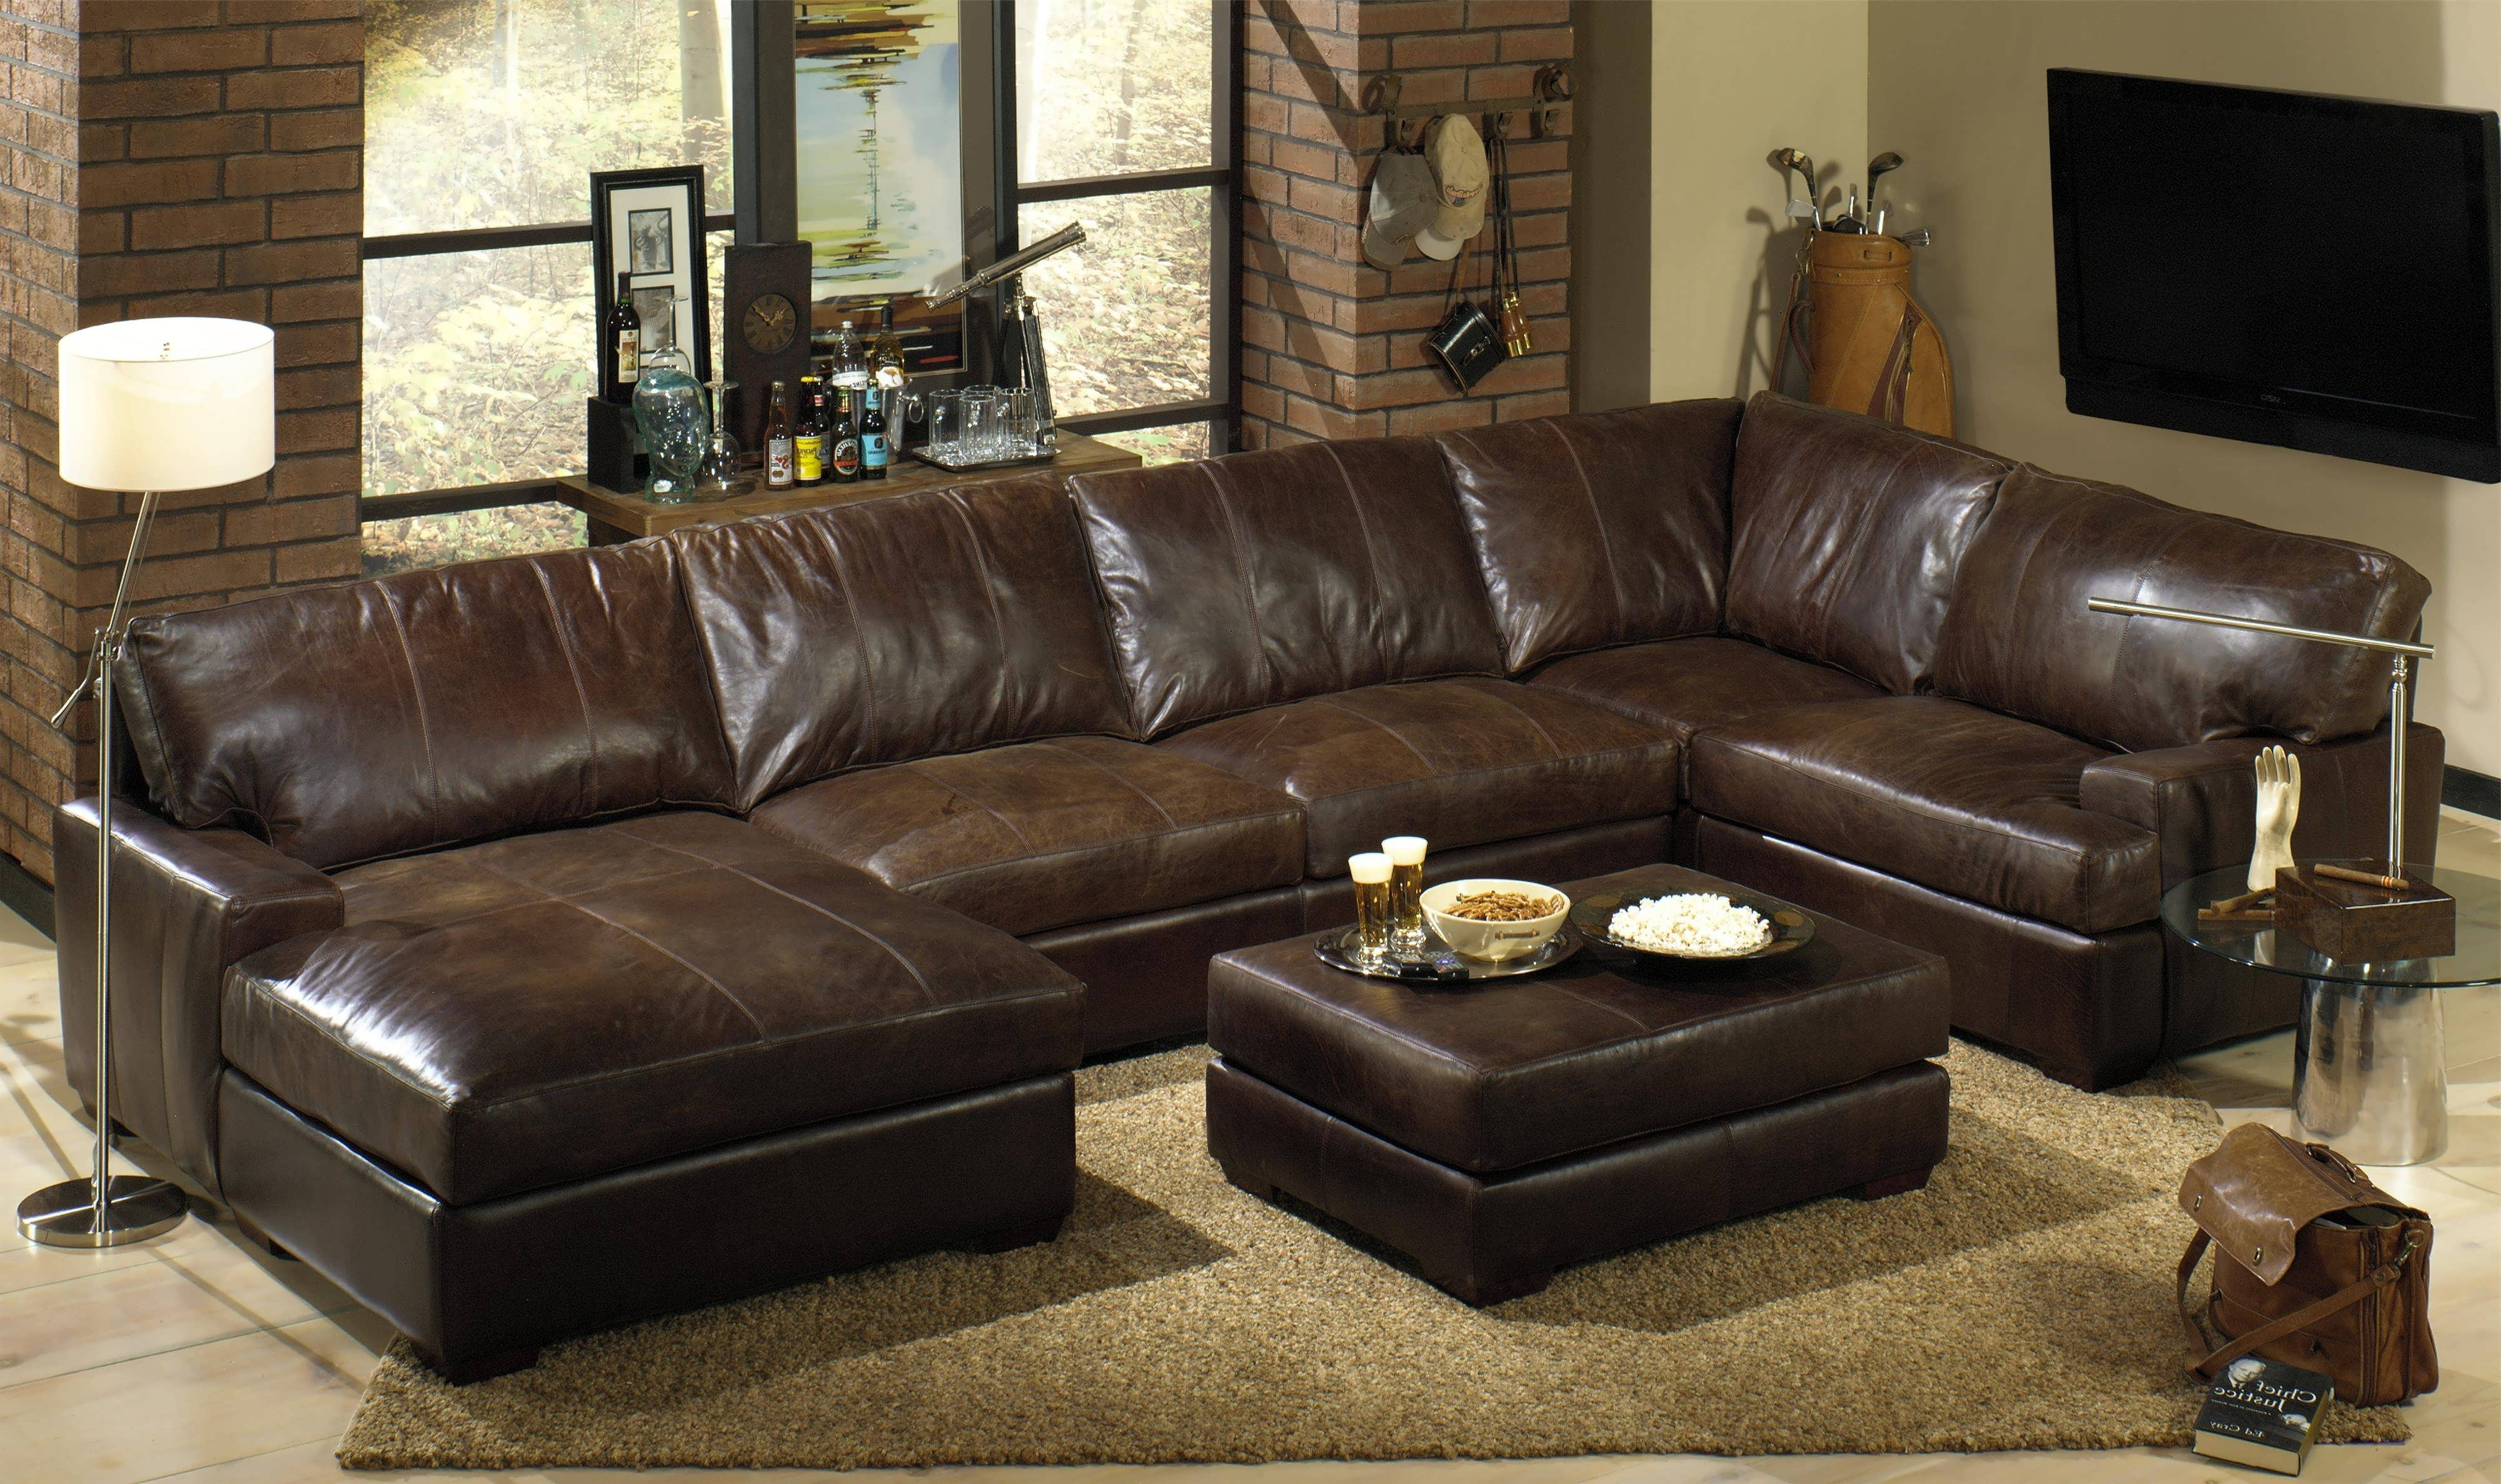 Sofa : Chaise Sofa Sectional With Chaise And Recliner White Within Newest Leather Sofa Chaises (View 7 of 15)